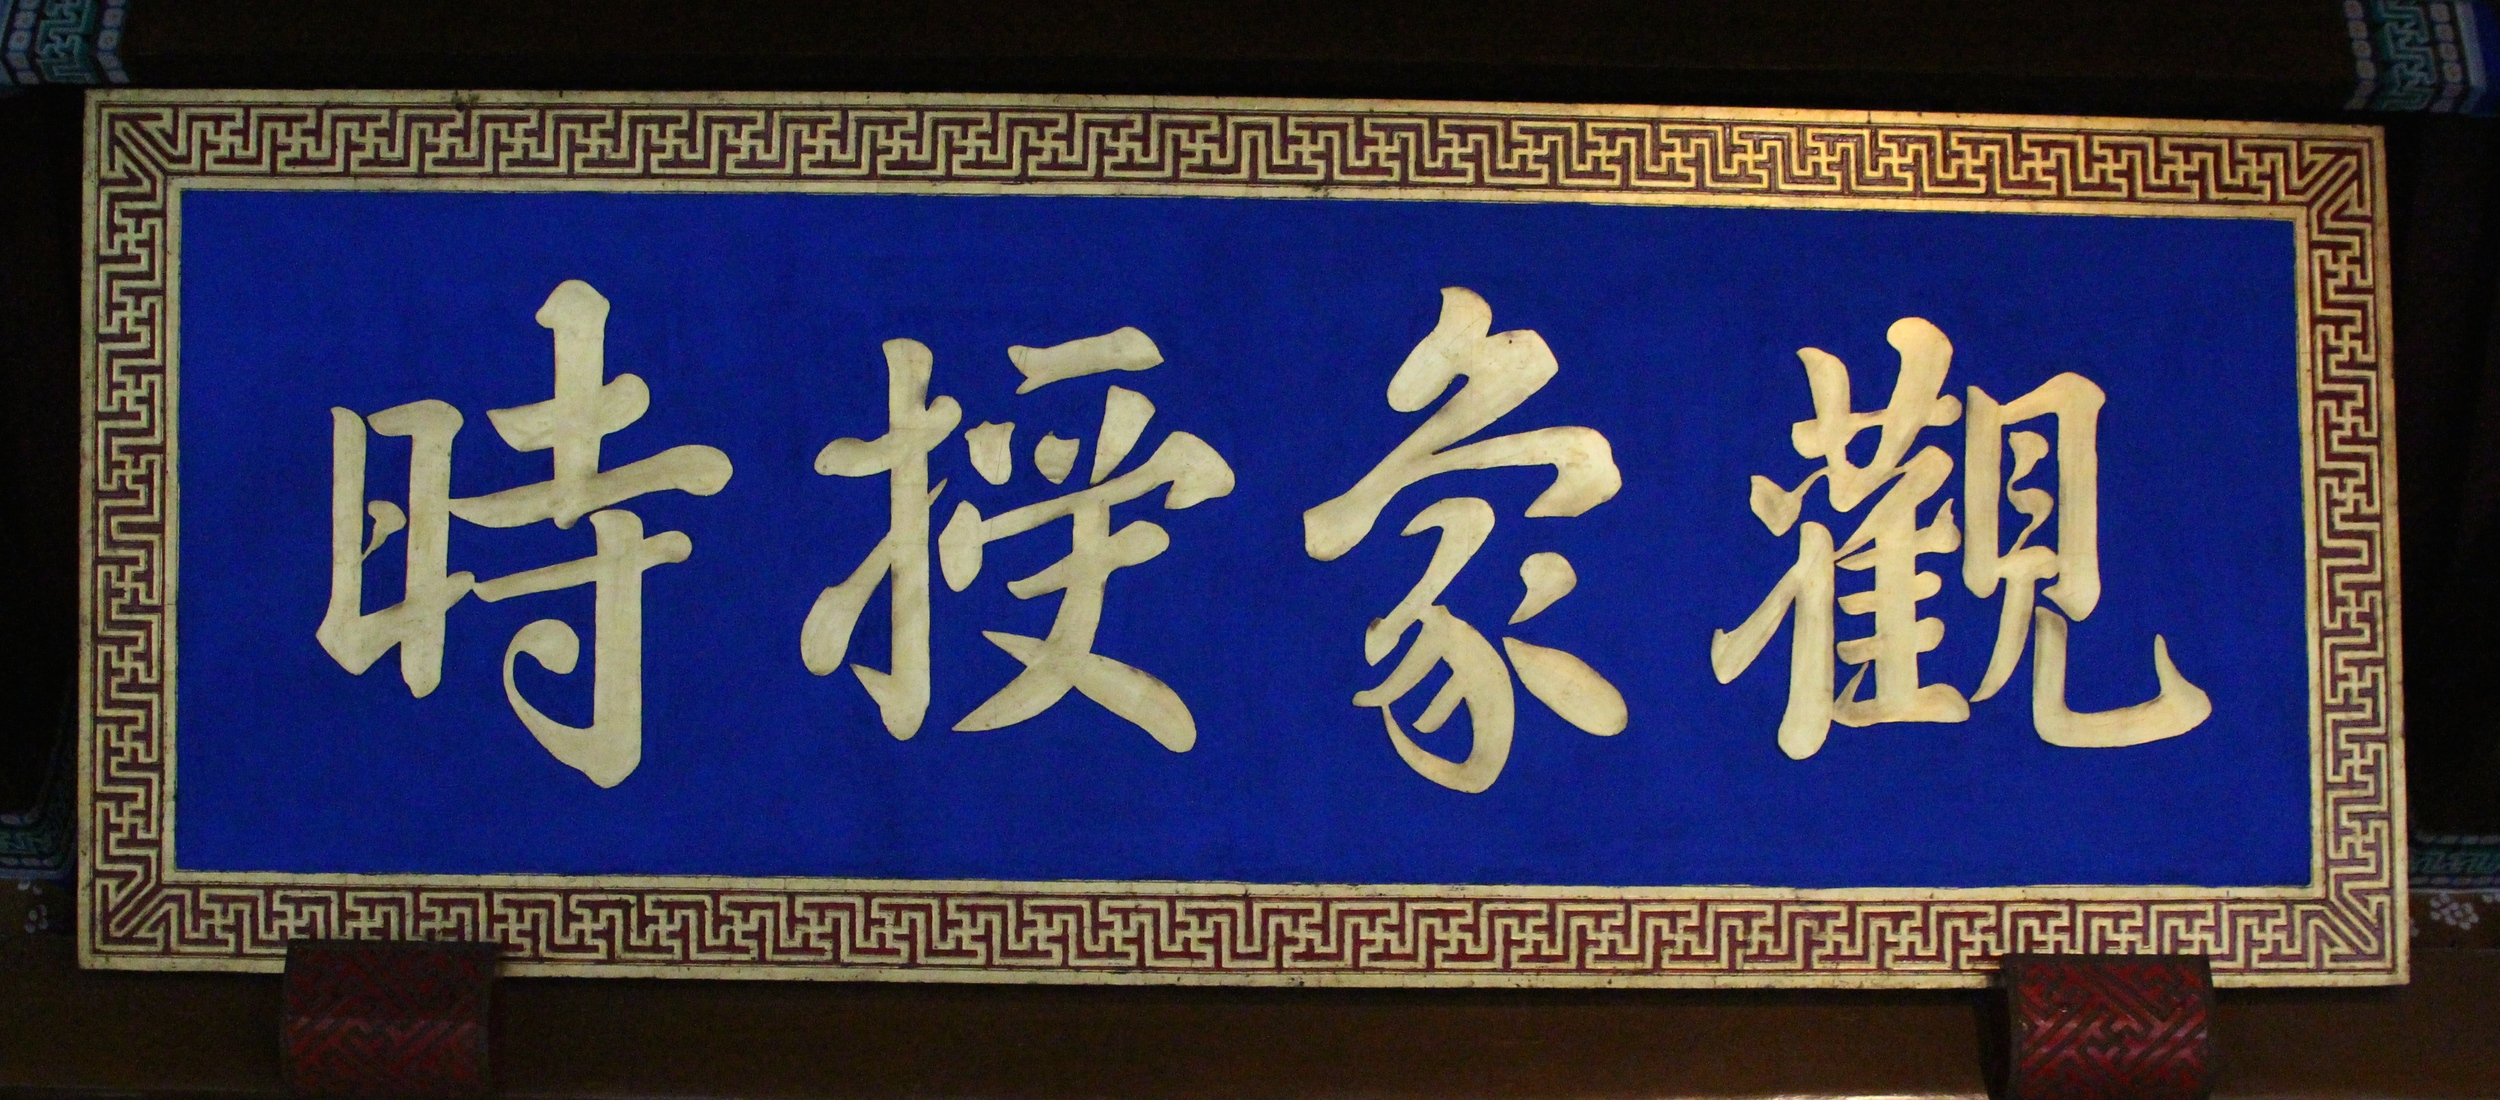 guess I should find out what this says...I just like the blue color